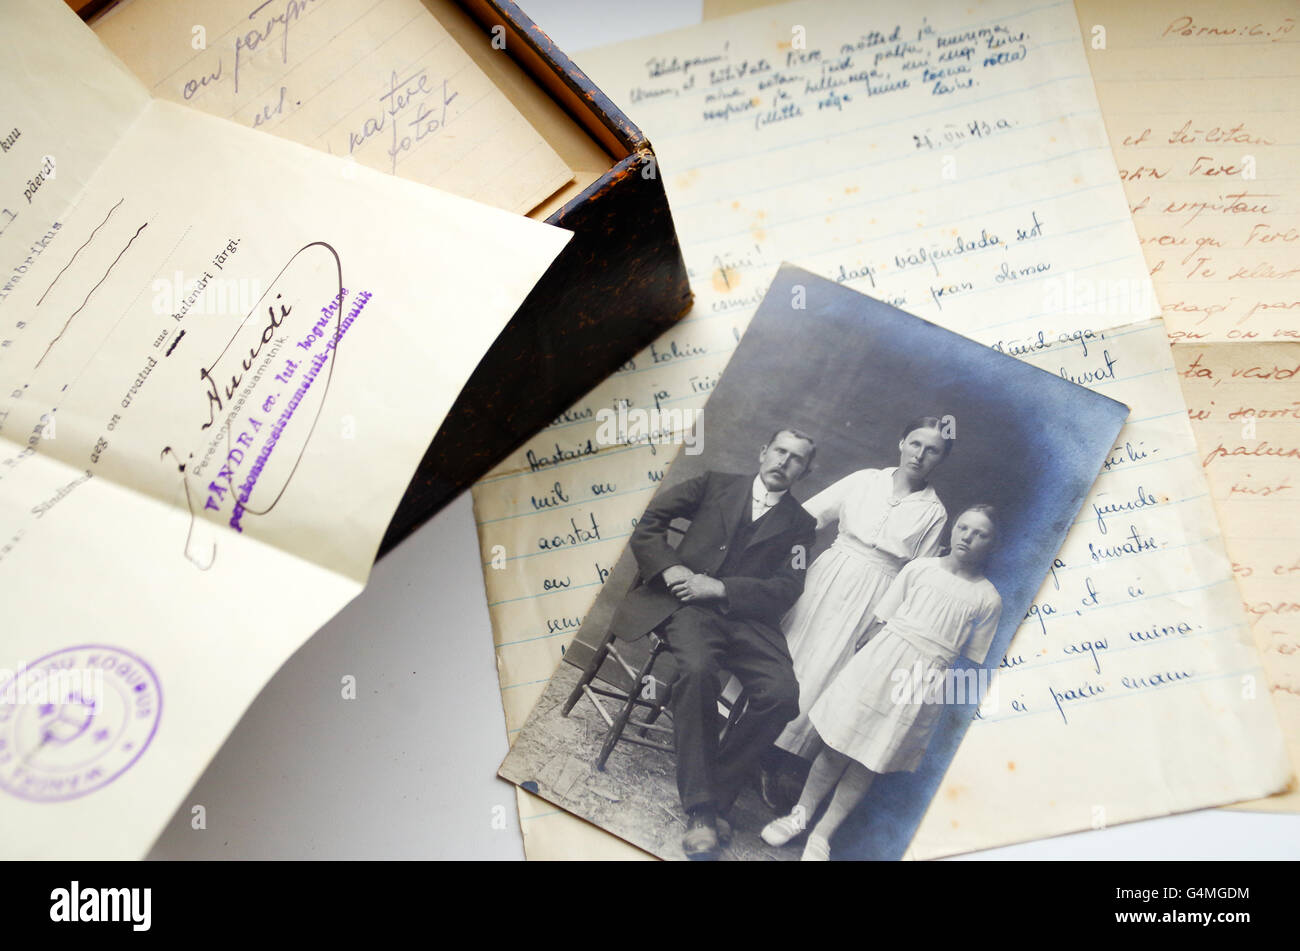 Handwritten love letters, a black-and-white family photo from 1930s and a stamped birth certificate from 1934, Estonia - Stock Image